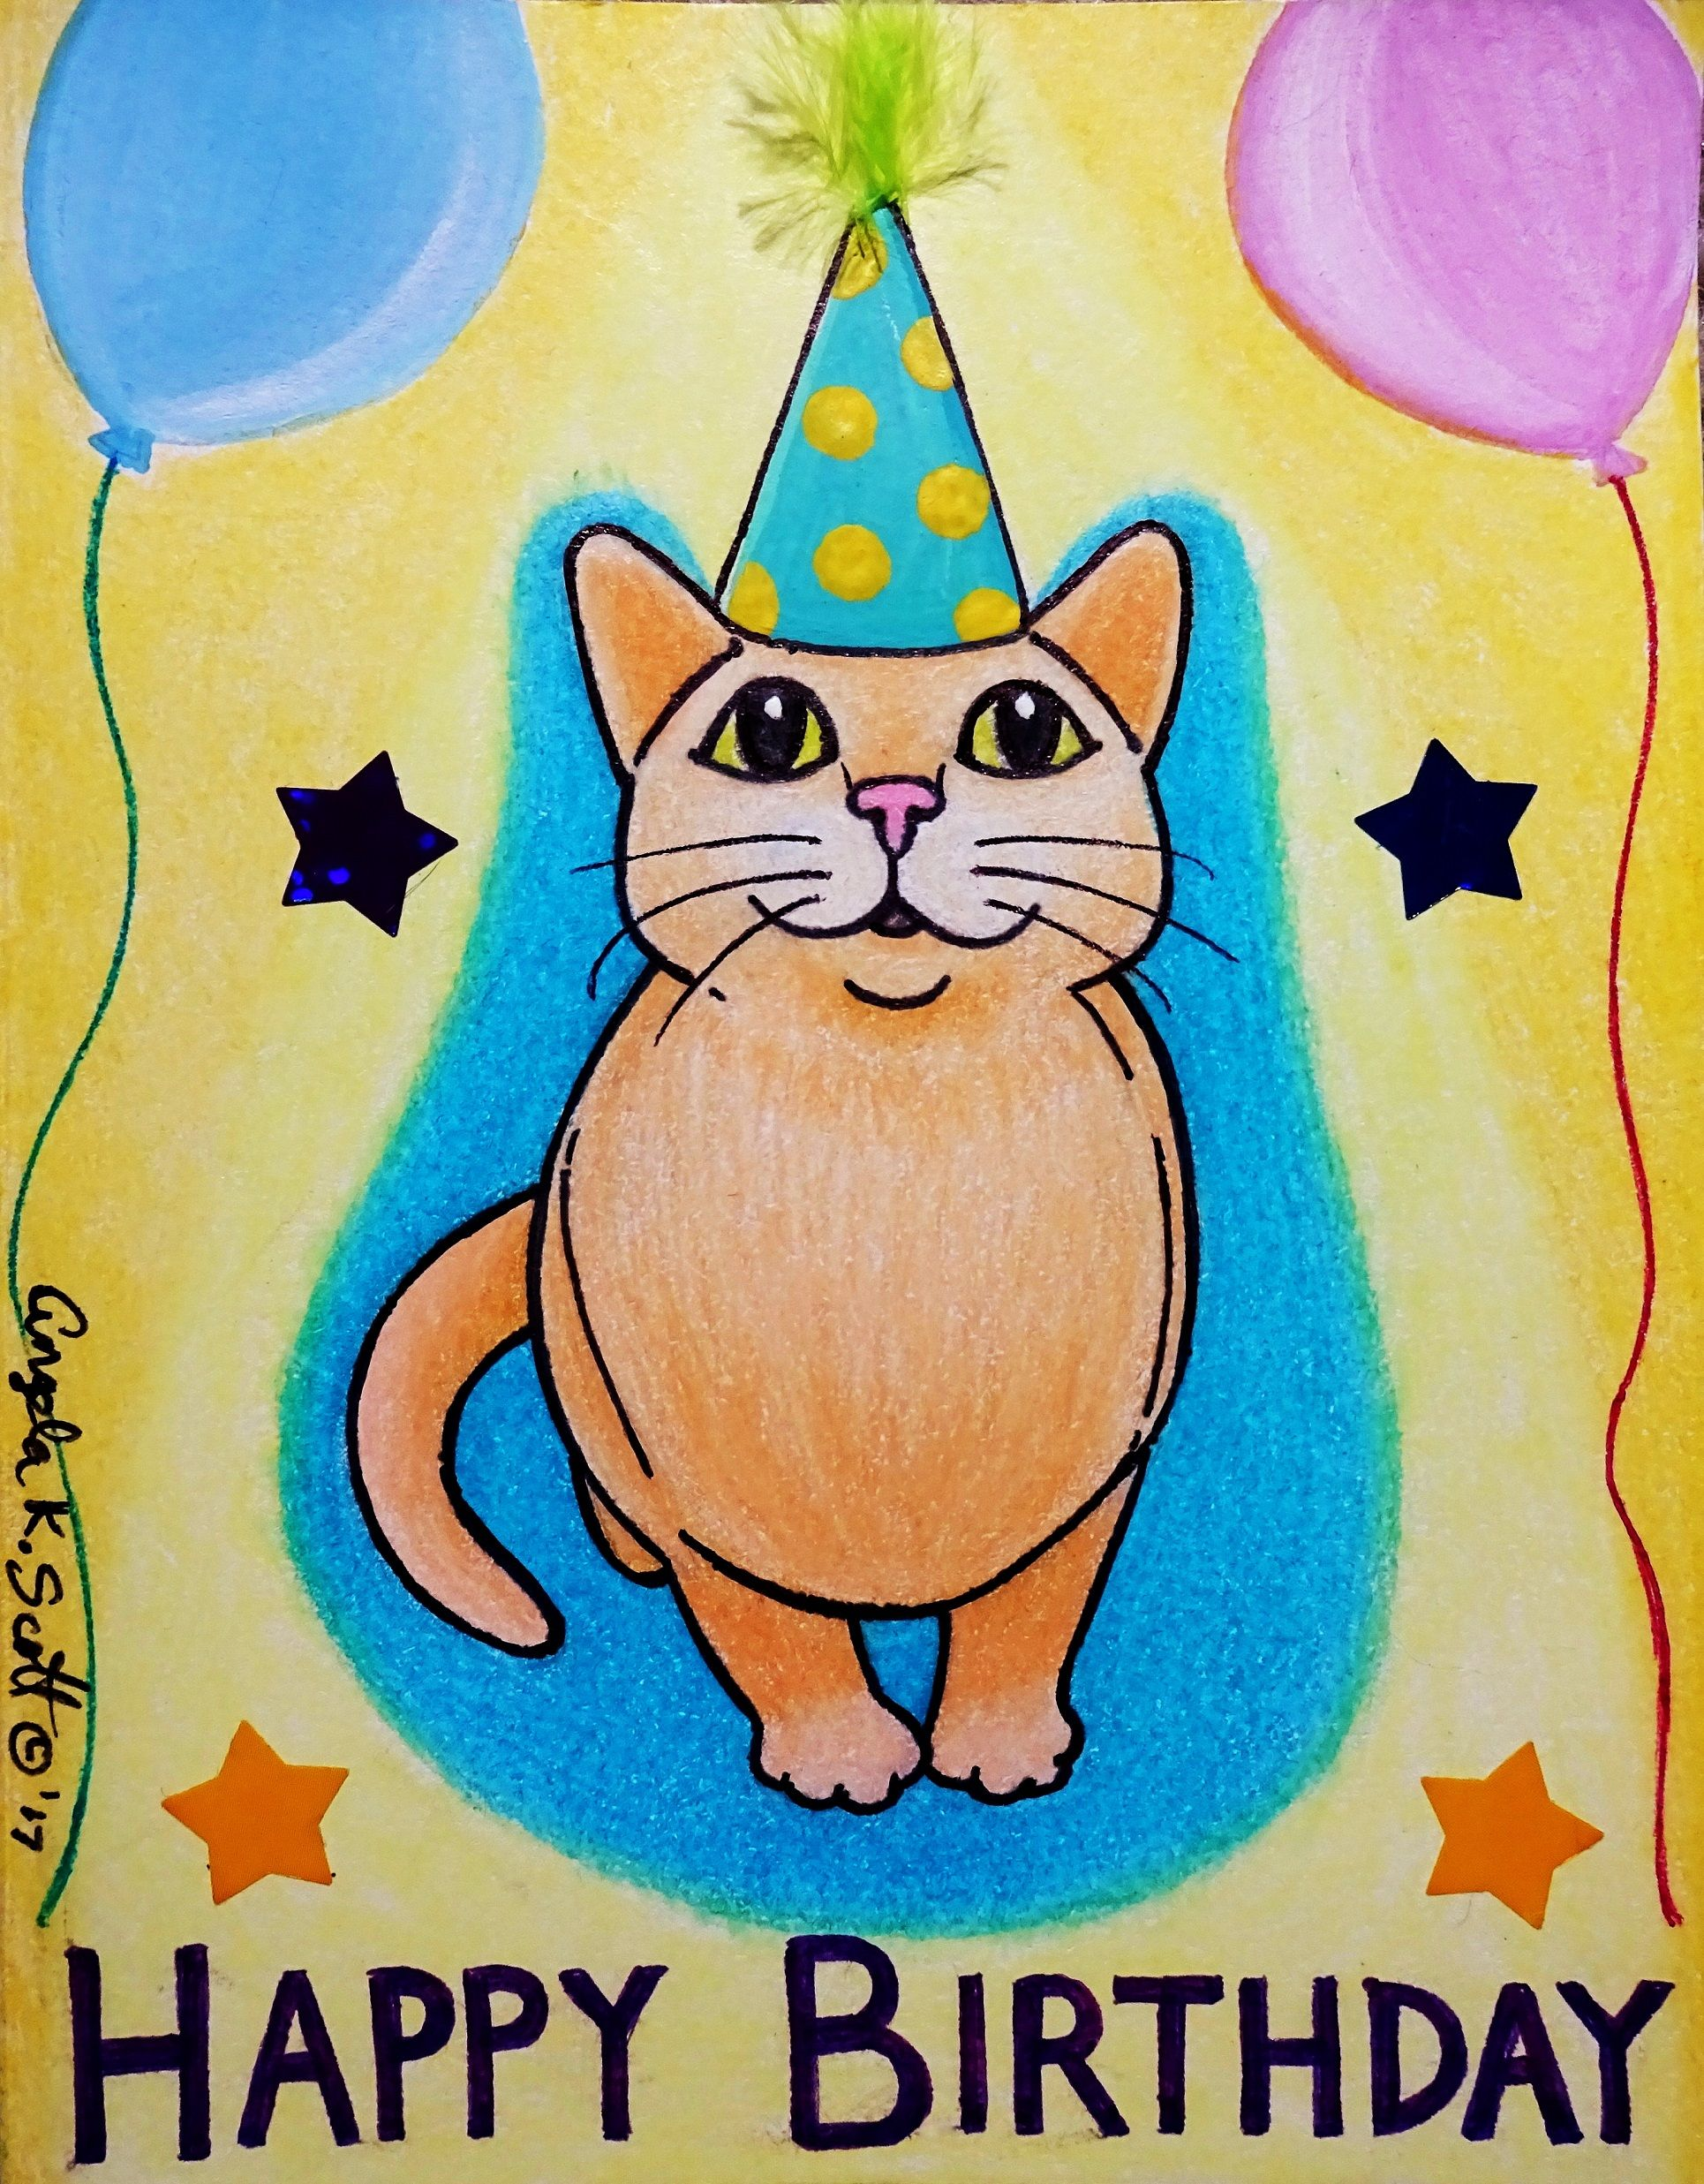 """Happy Birthday"" CAT. My artwork of a bday hat wearing cat"